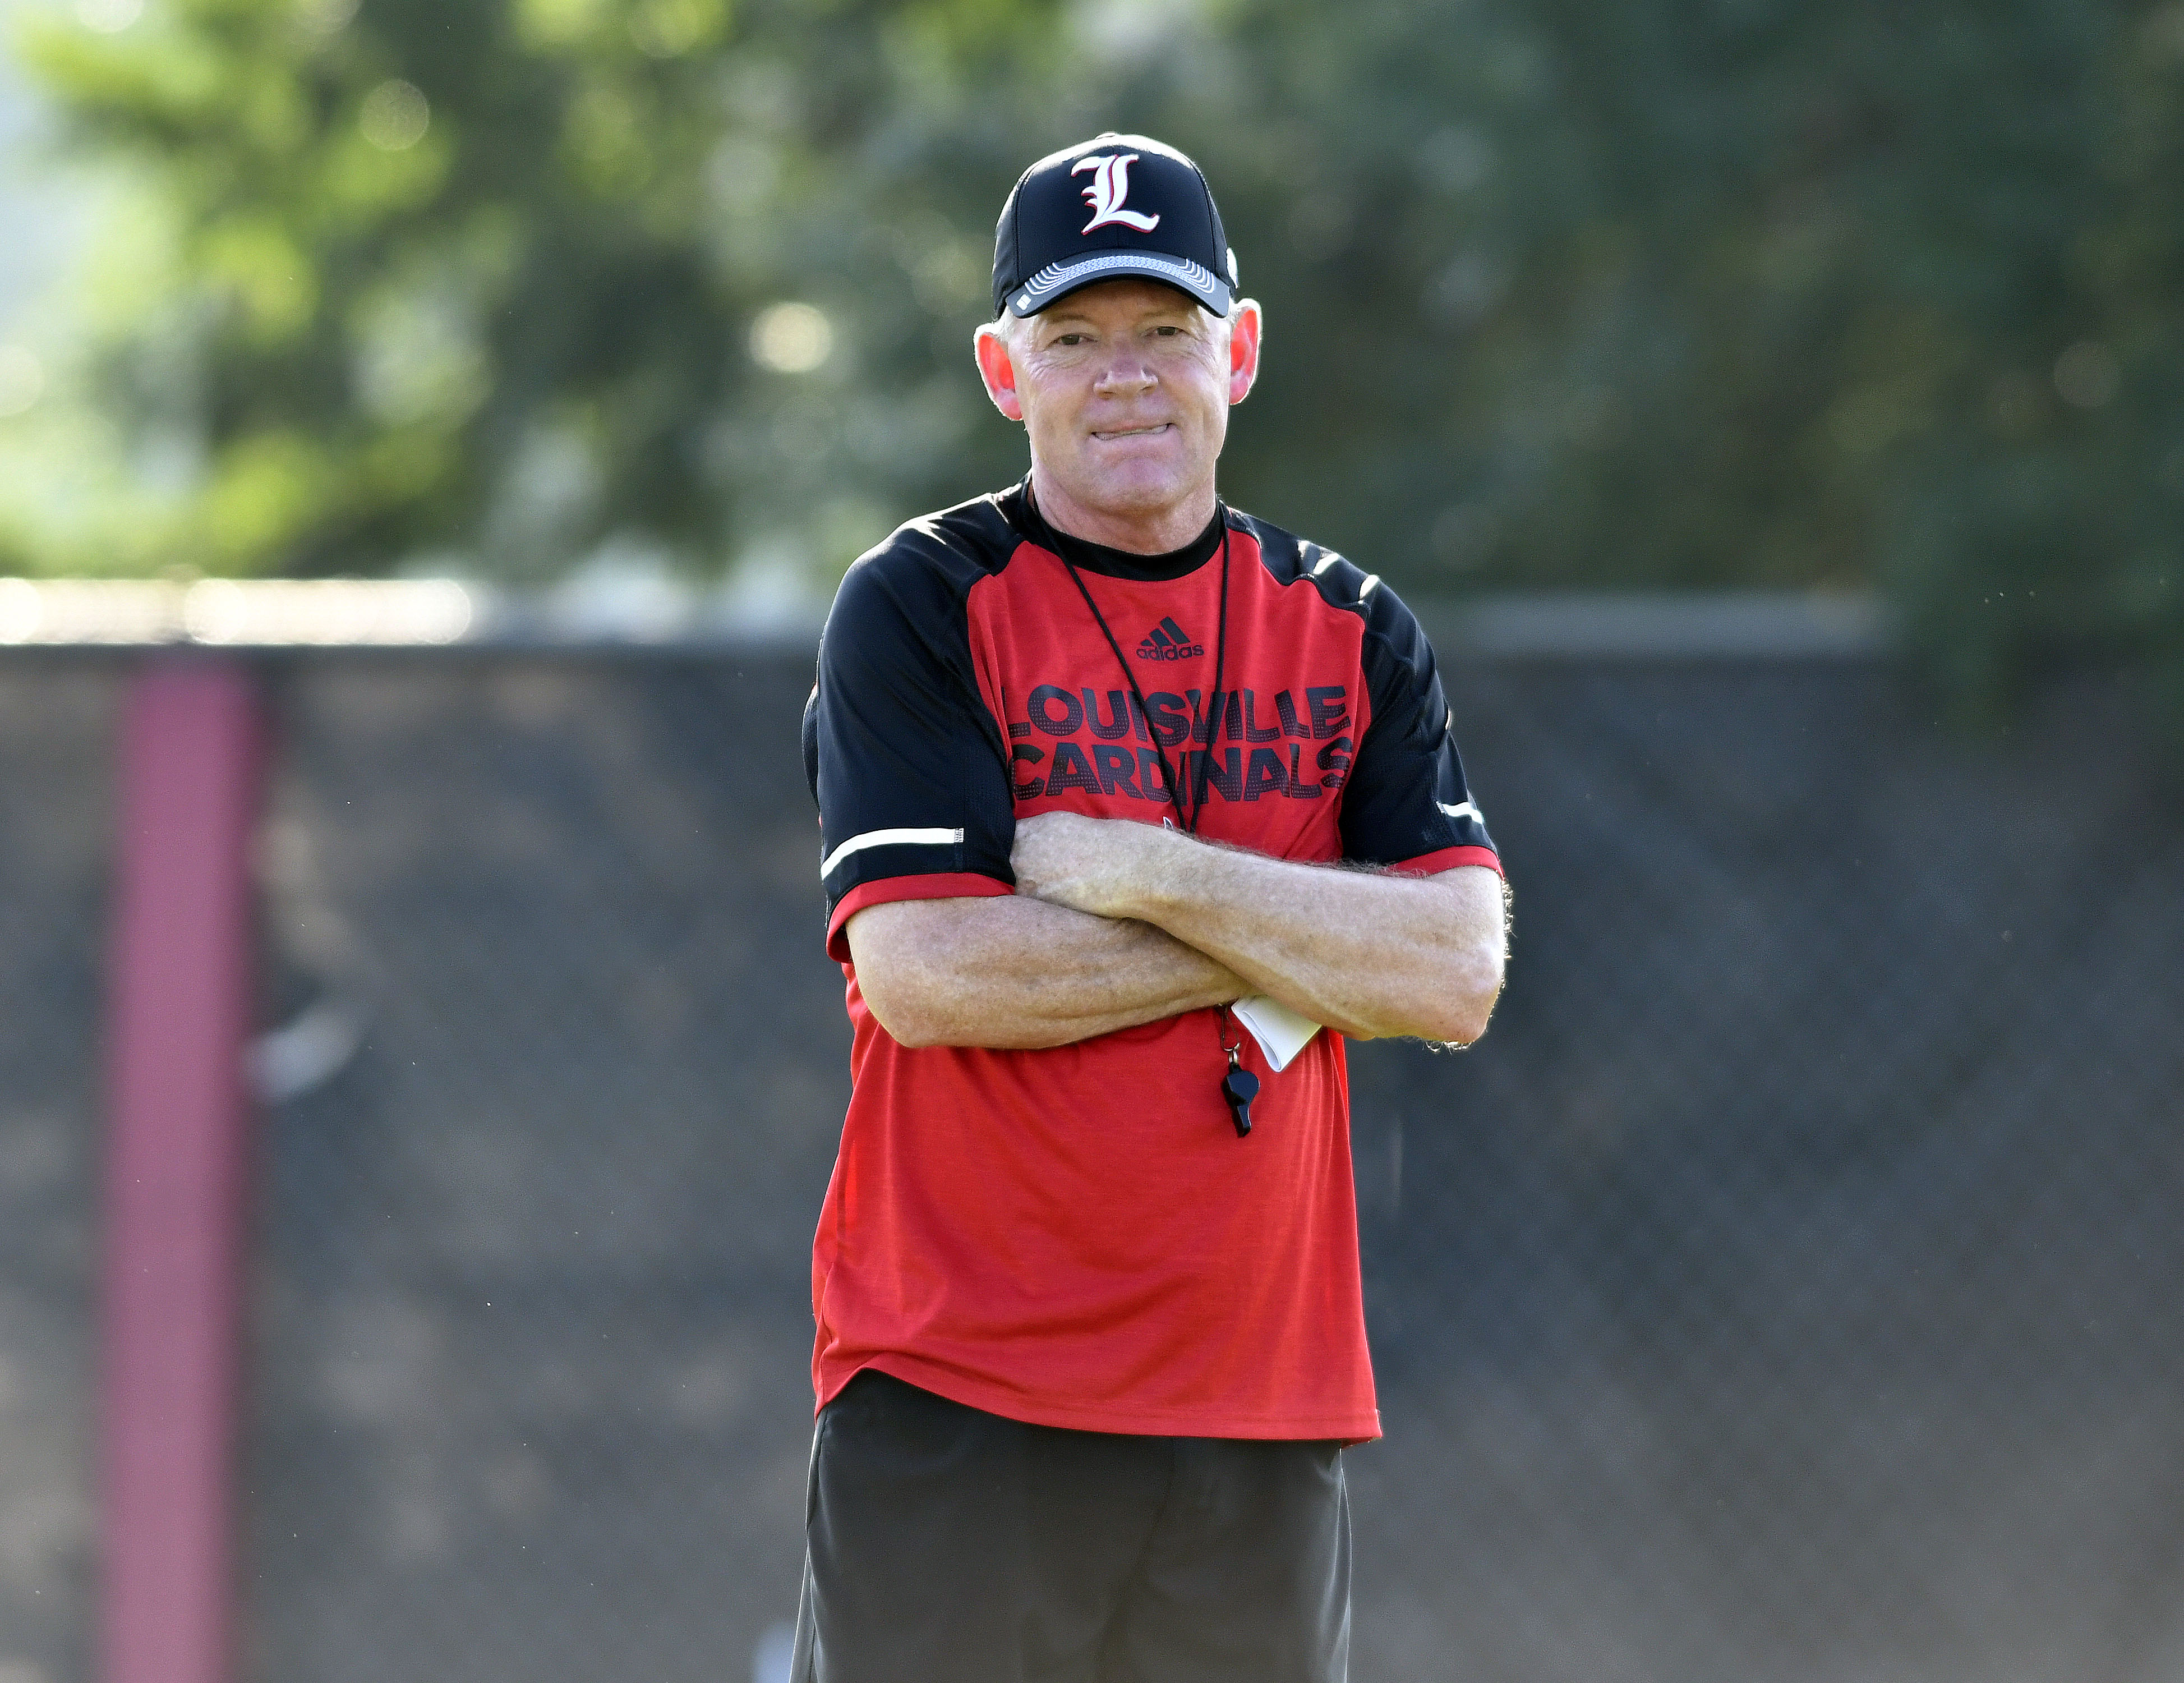 FILE - In this Aug. 5, 2016, file photo, Louisville coach Bobby Petrino looks on as his team goes through workouts during NCAA college football practice in Louisville Ky. After recent openers against Miami and Auburn, No. 19 Louisville faces a lower-profi